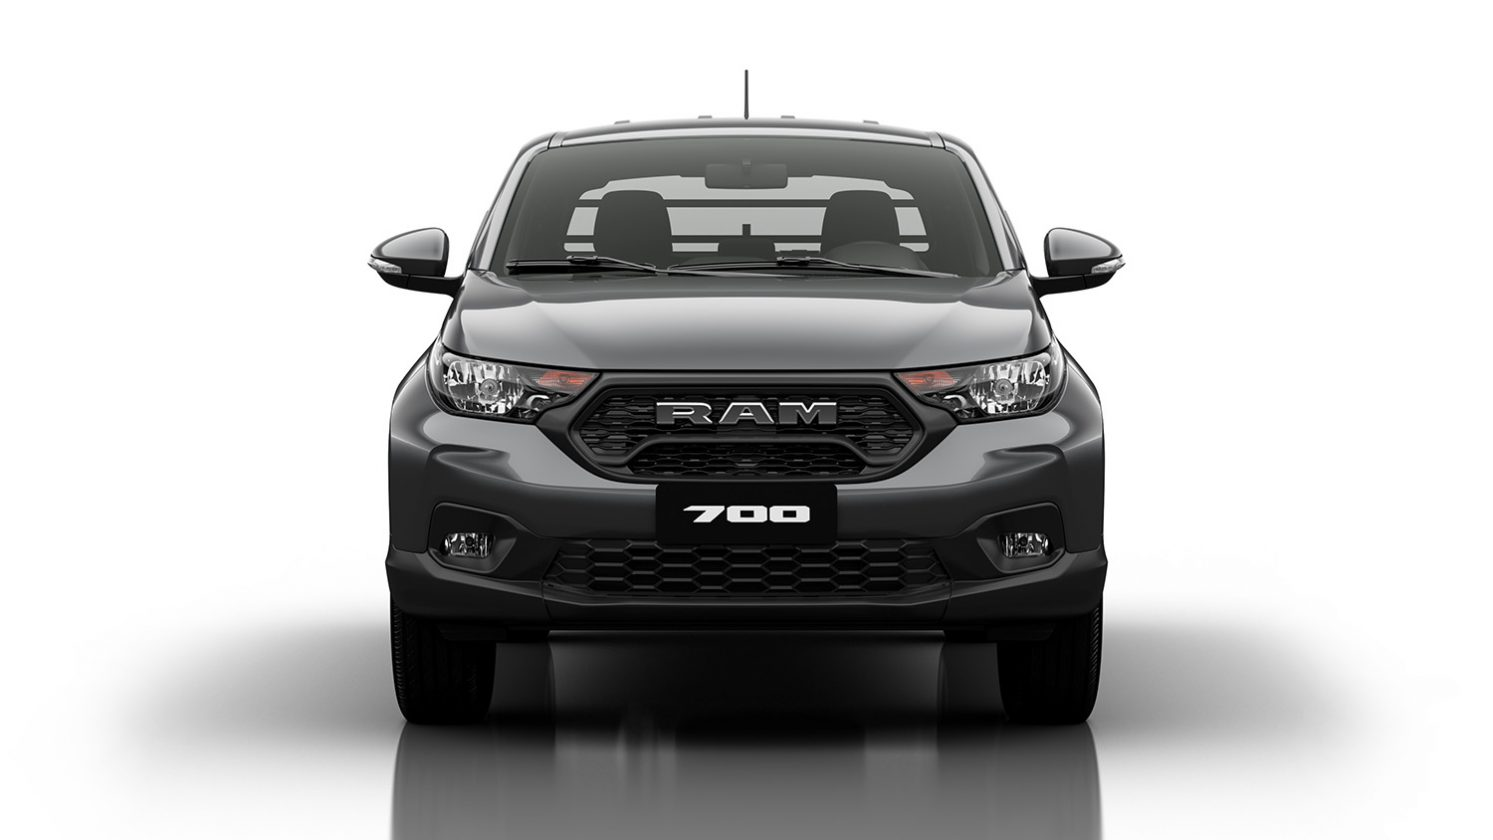 Ram 700 debuts on official terms